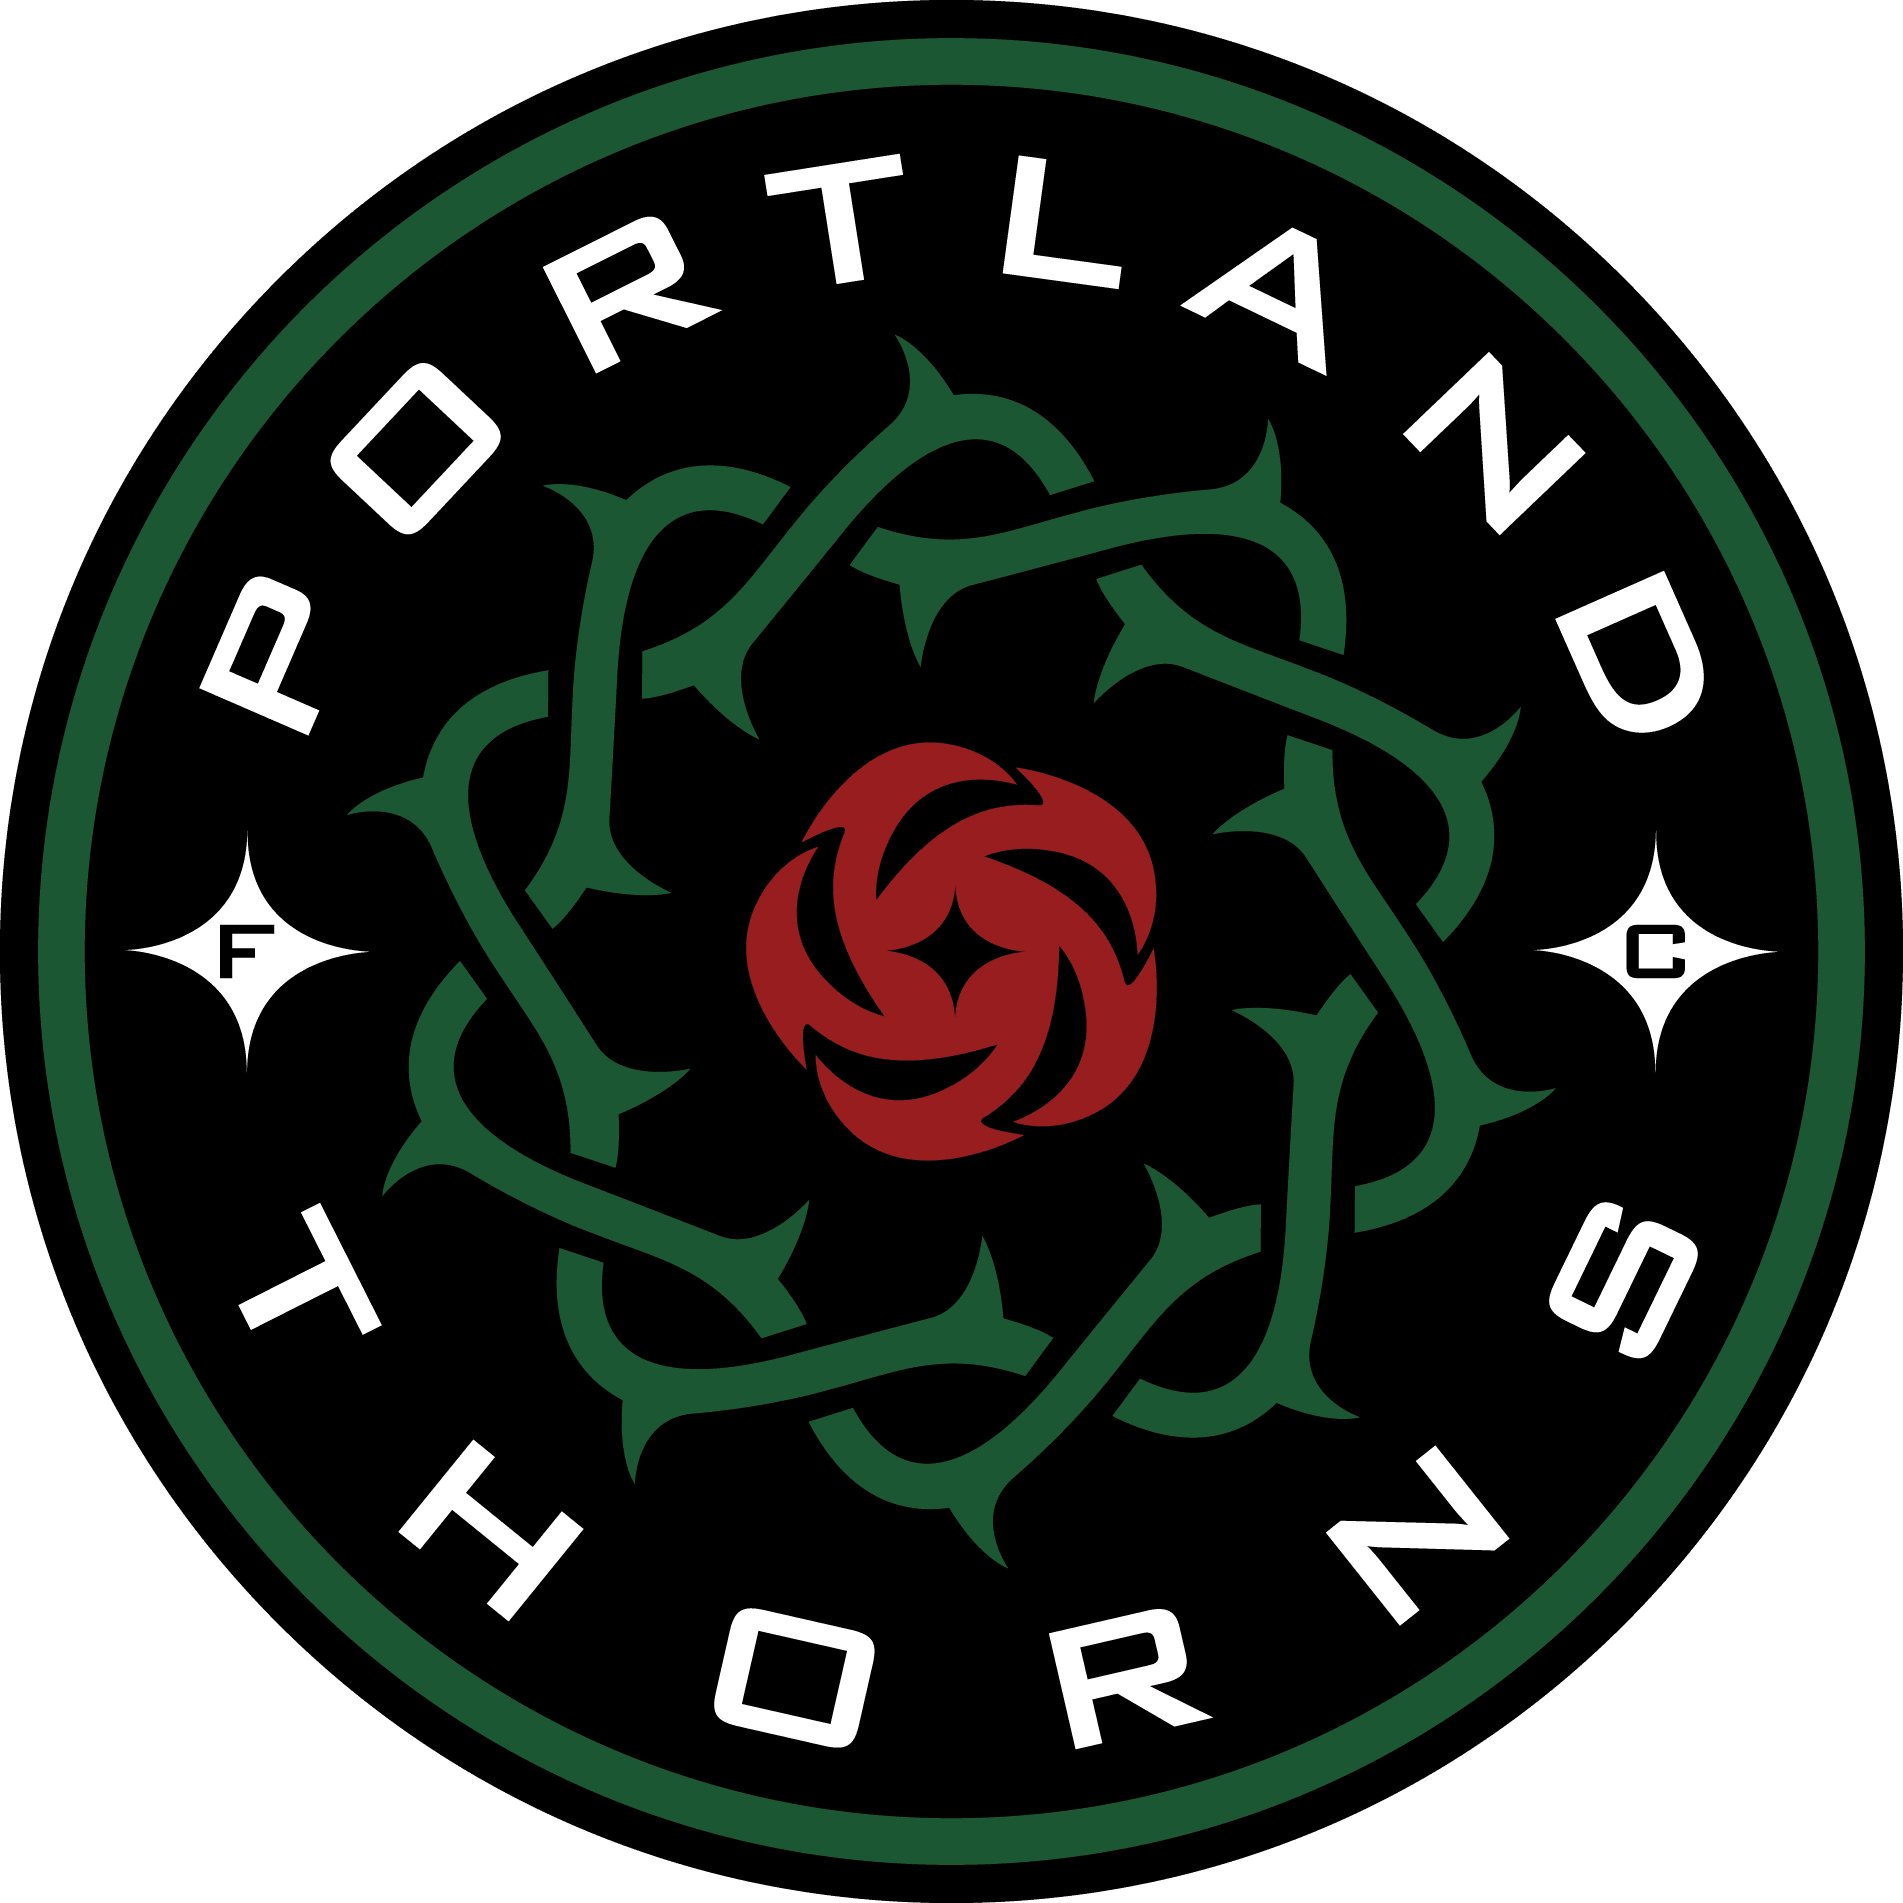 Logo for Portland Thorns, Oregon professional women's soccer team.